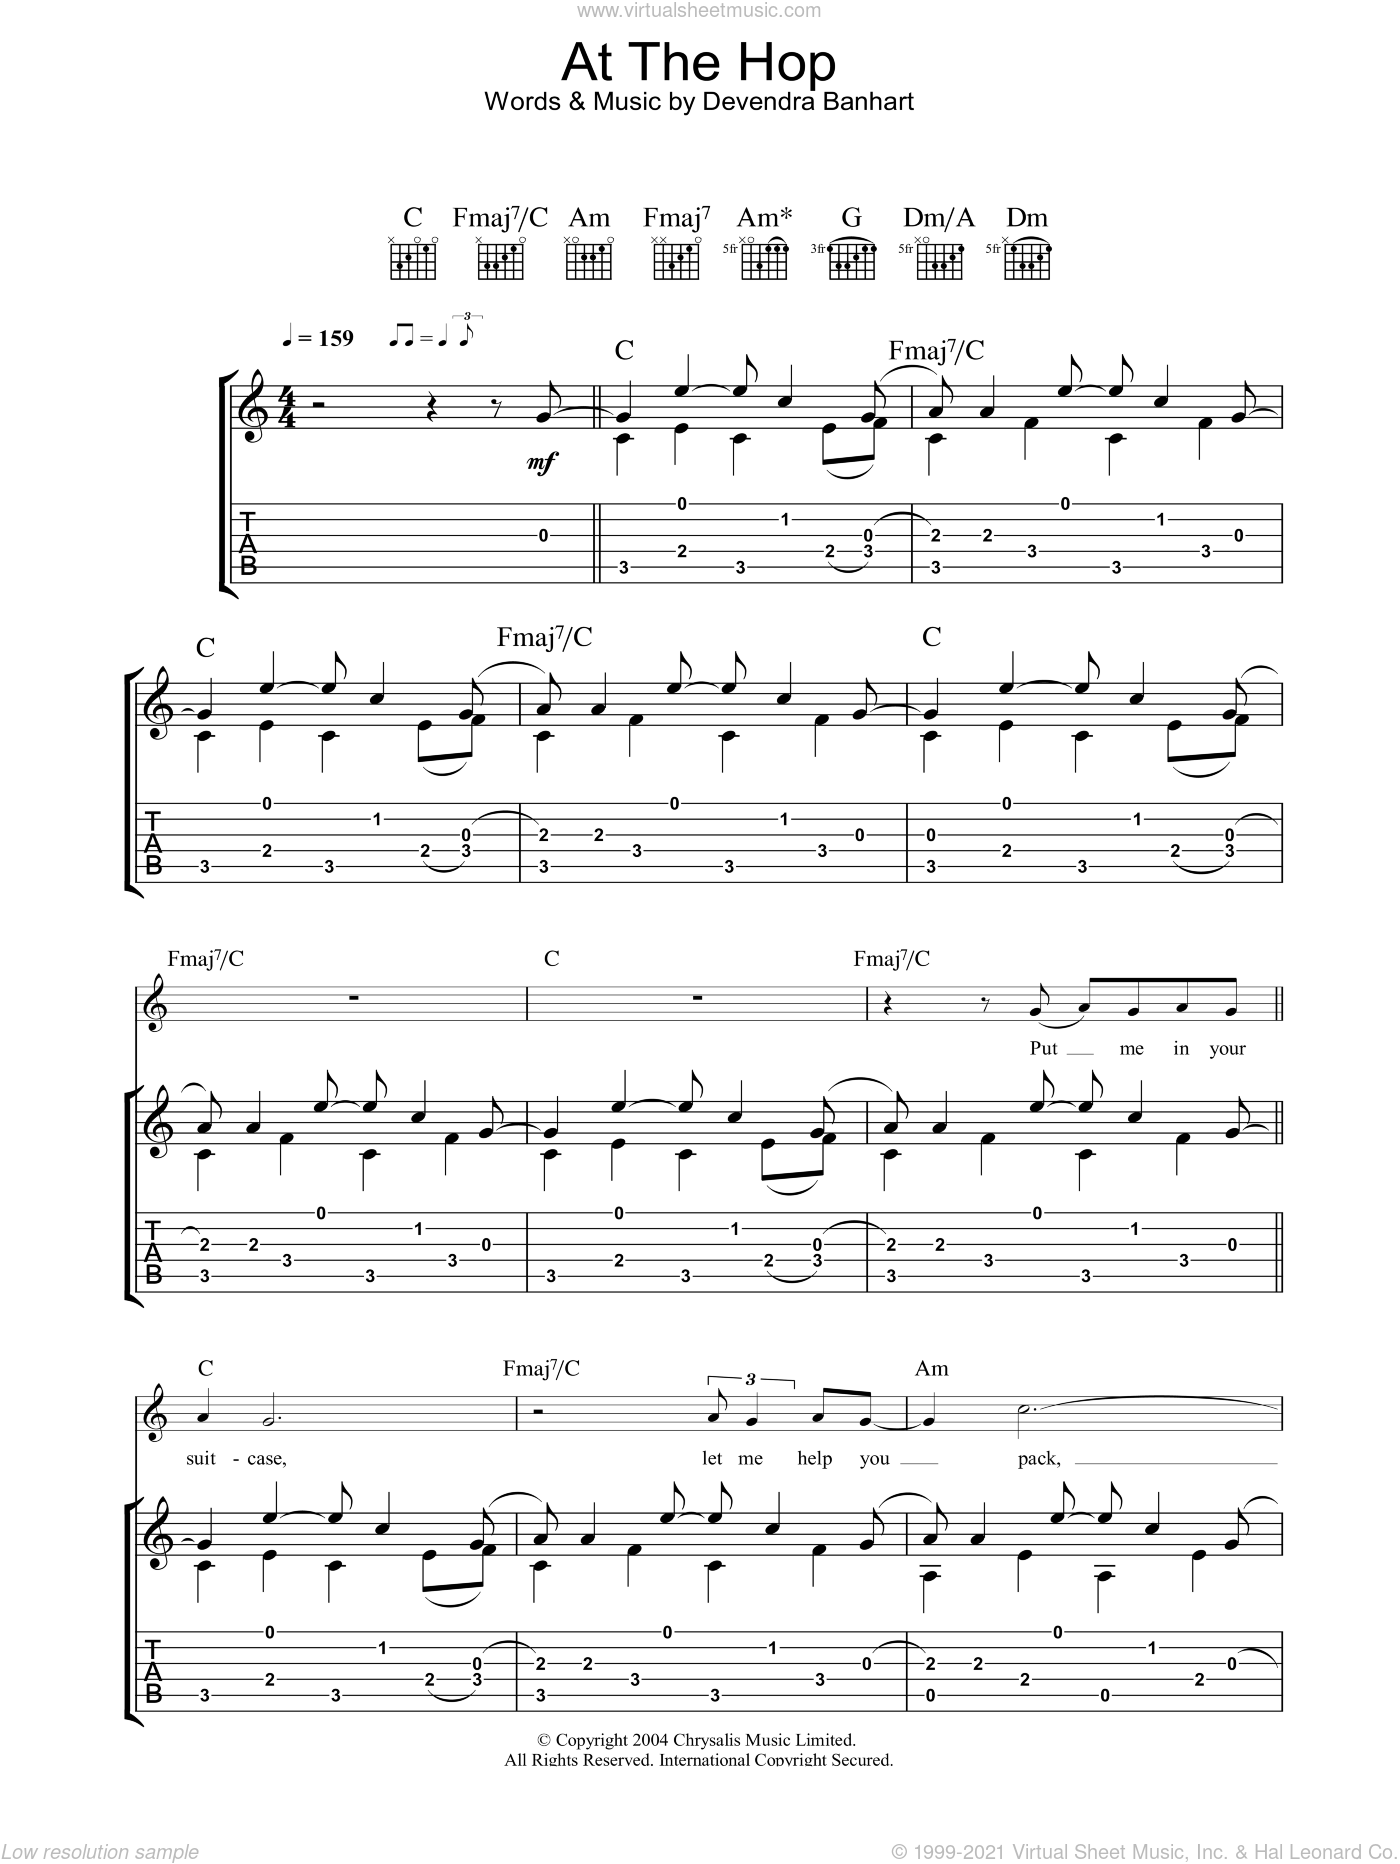 At The Hop sheet music for guitar (tablature) by Devendra Banhart